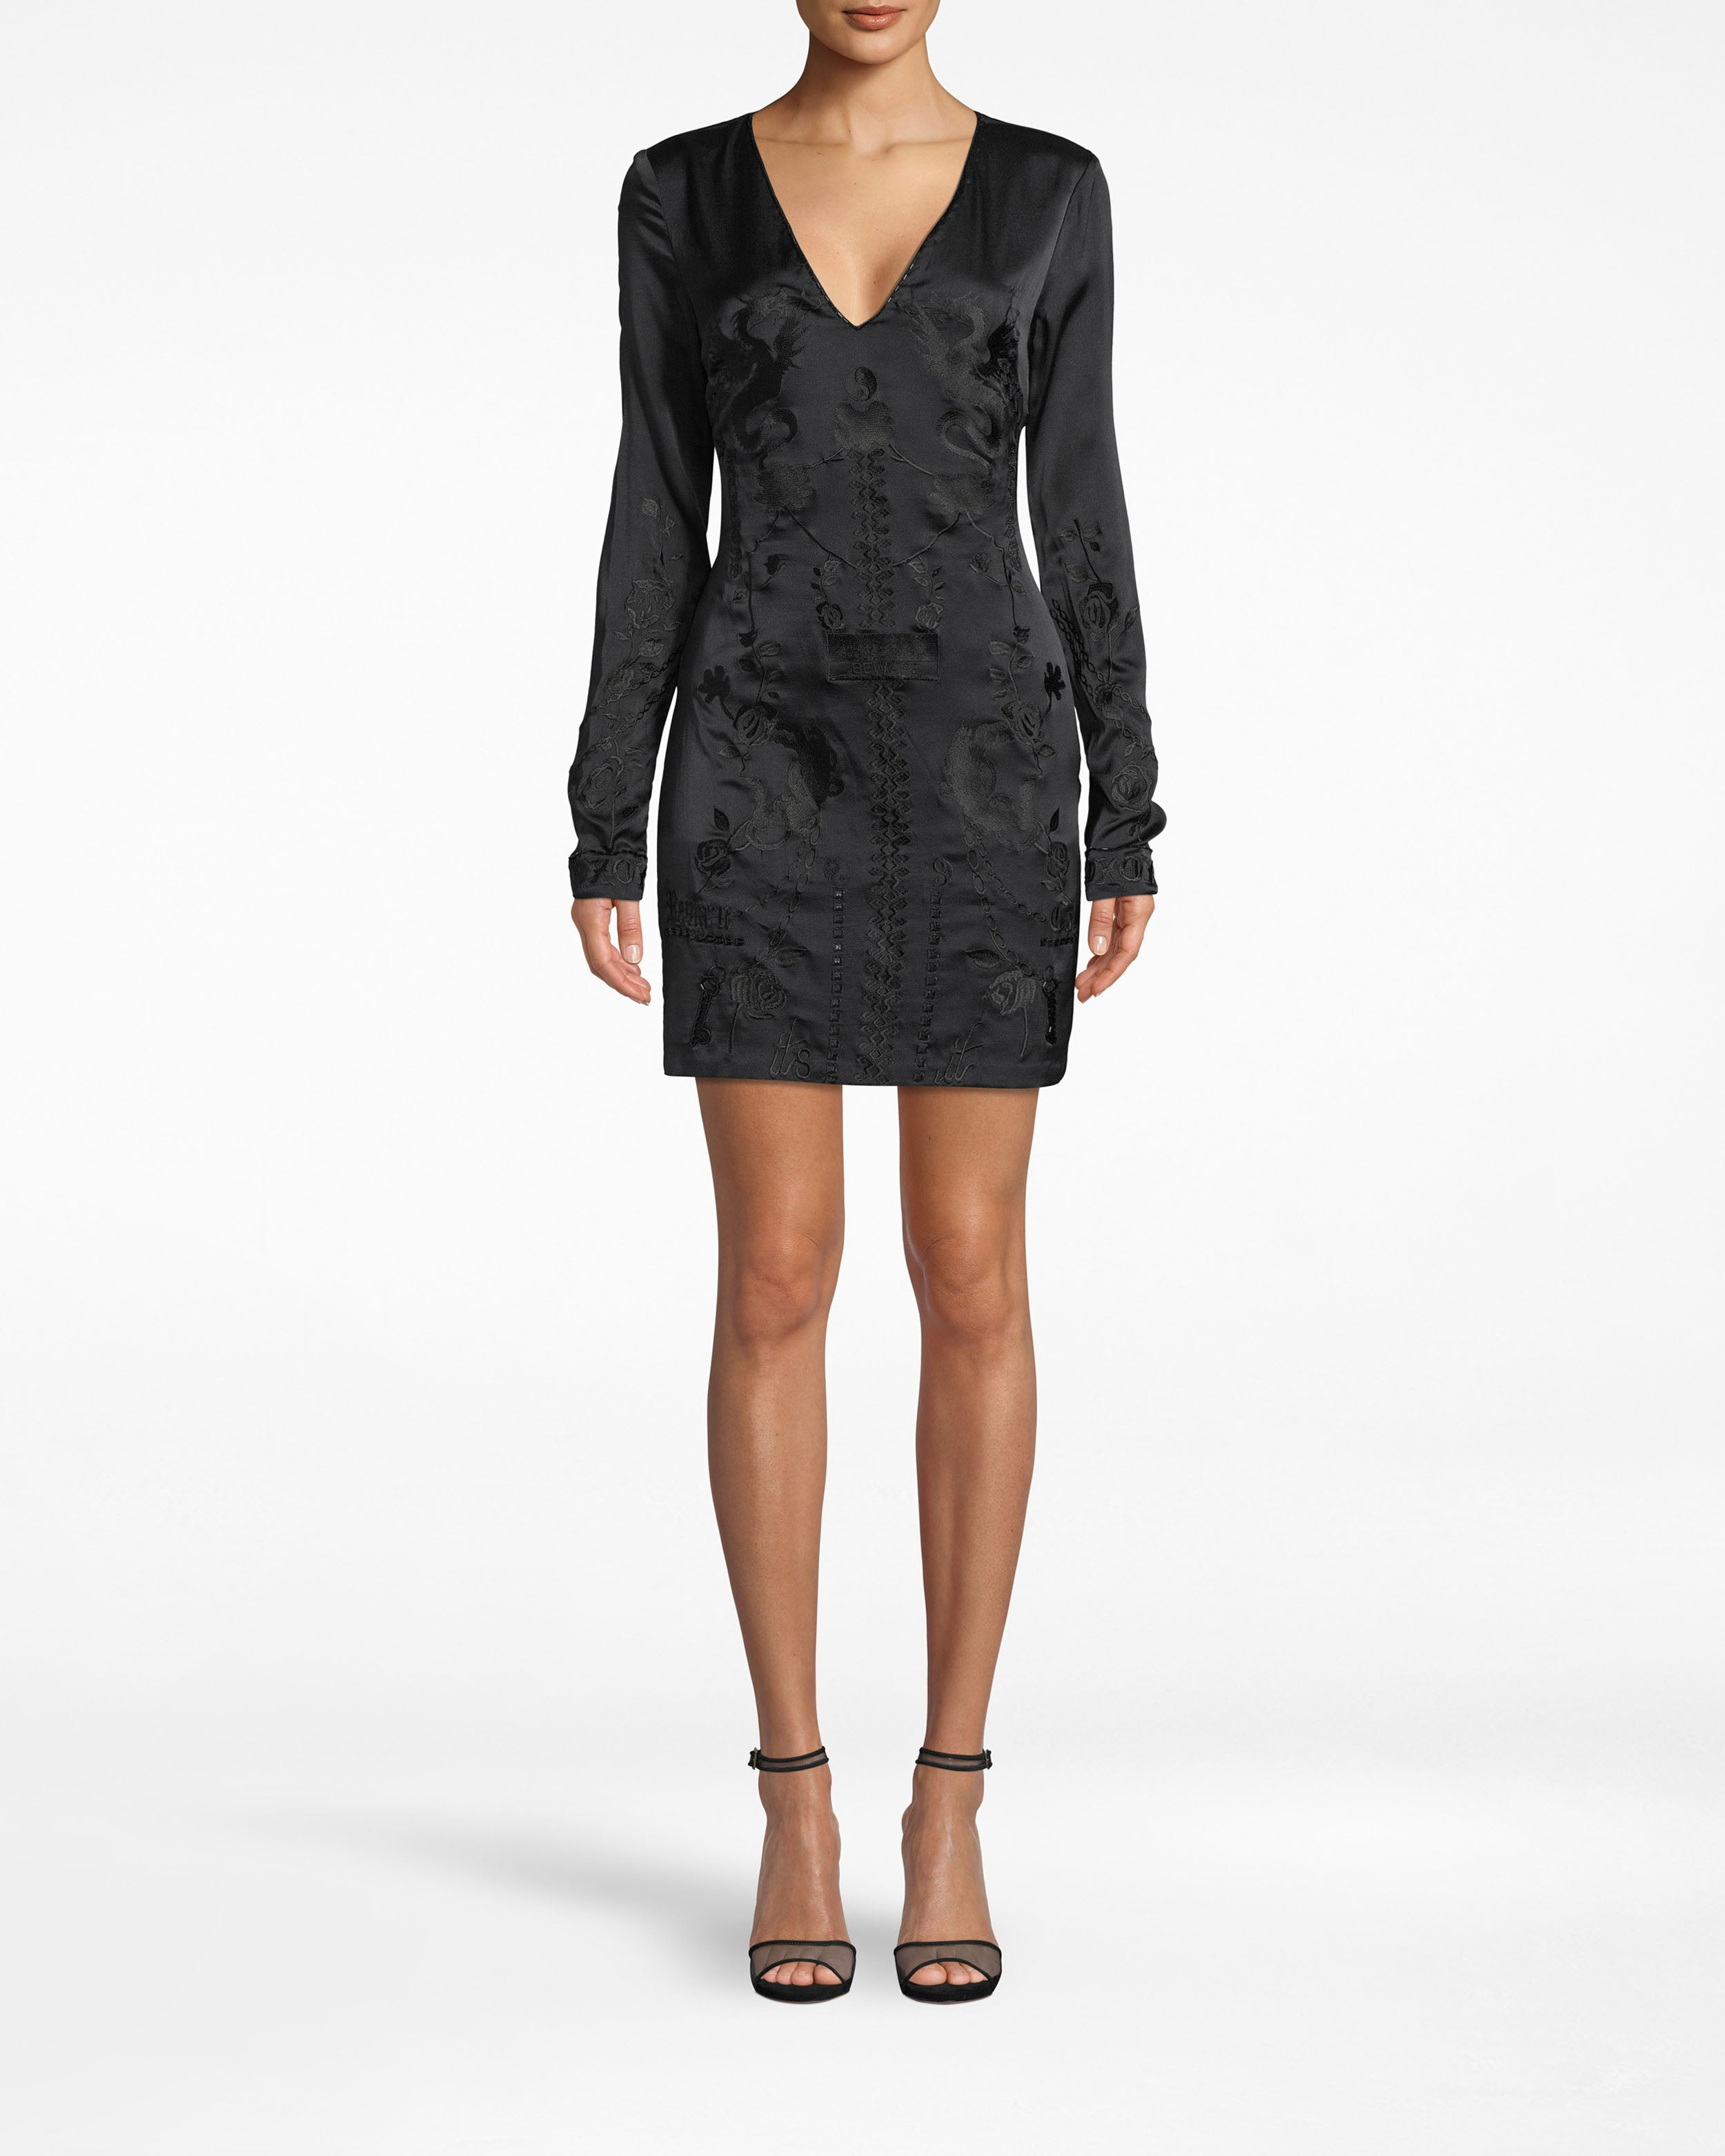 nicole miller stretch charmeuse embroidered mini dress in black | silk/polyester | size 0